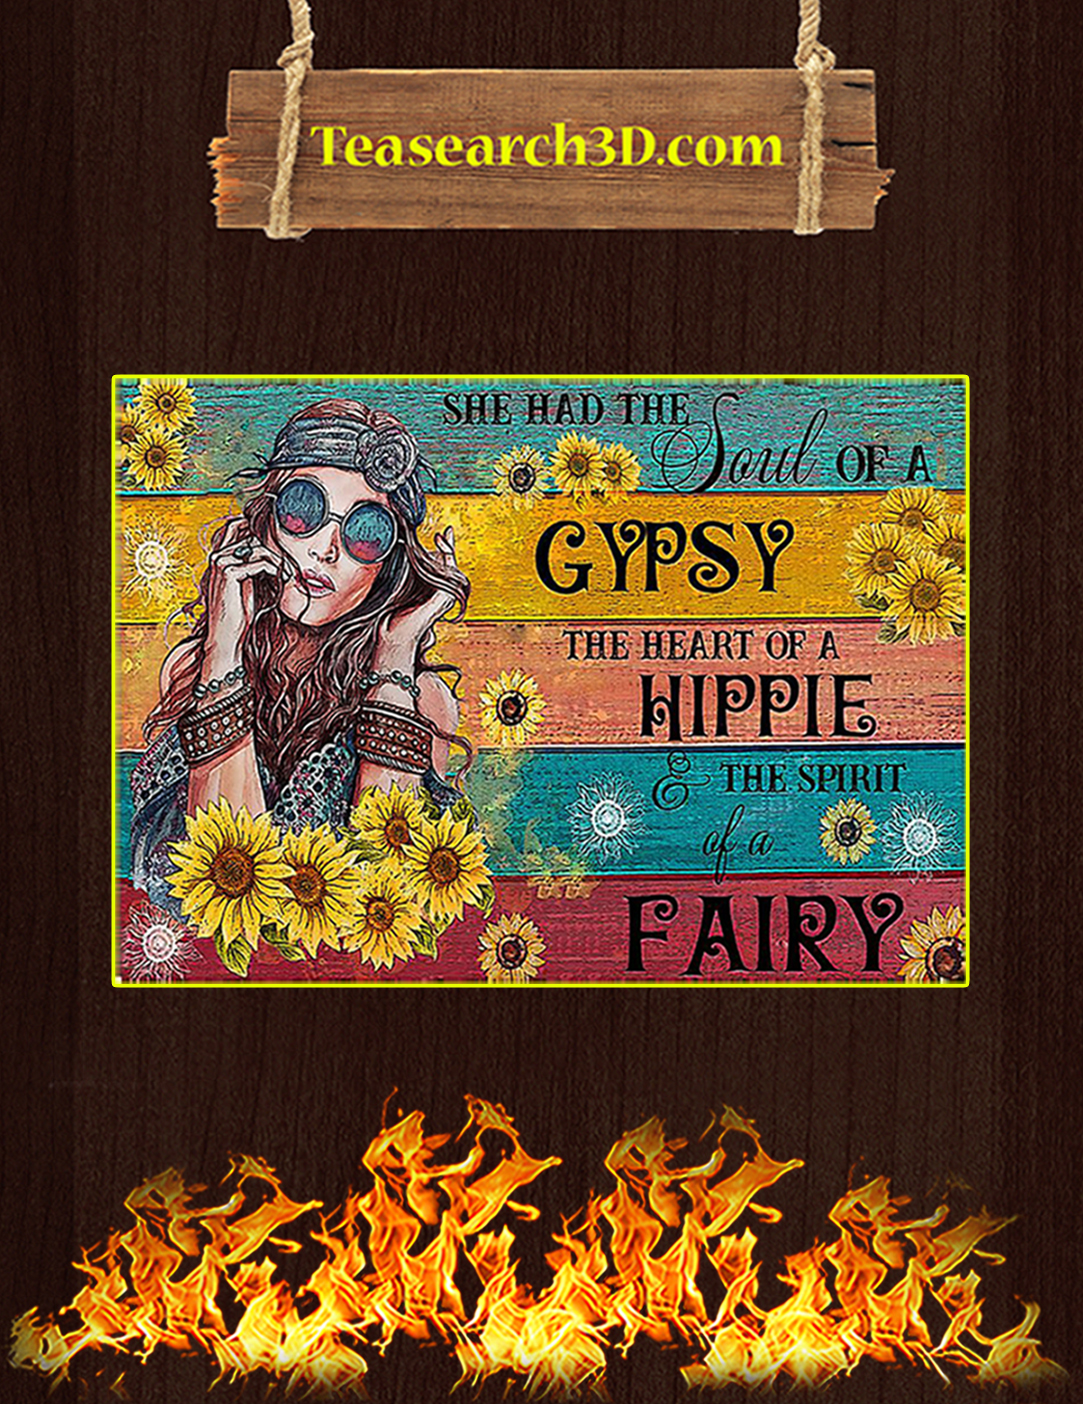 She had the soul of a gyspy the heart of a hippie poster A2